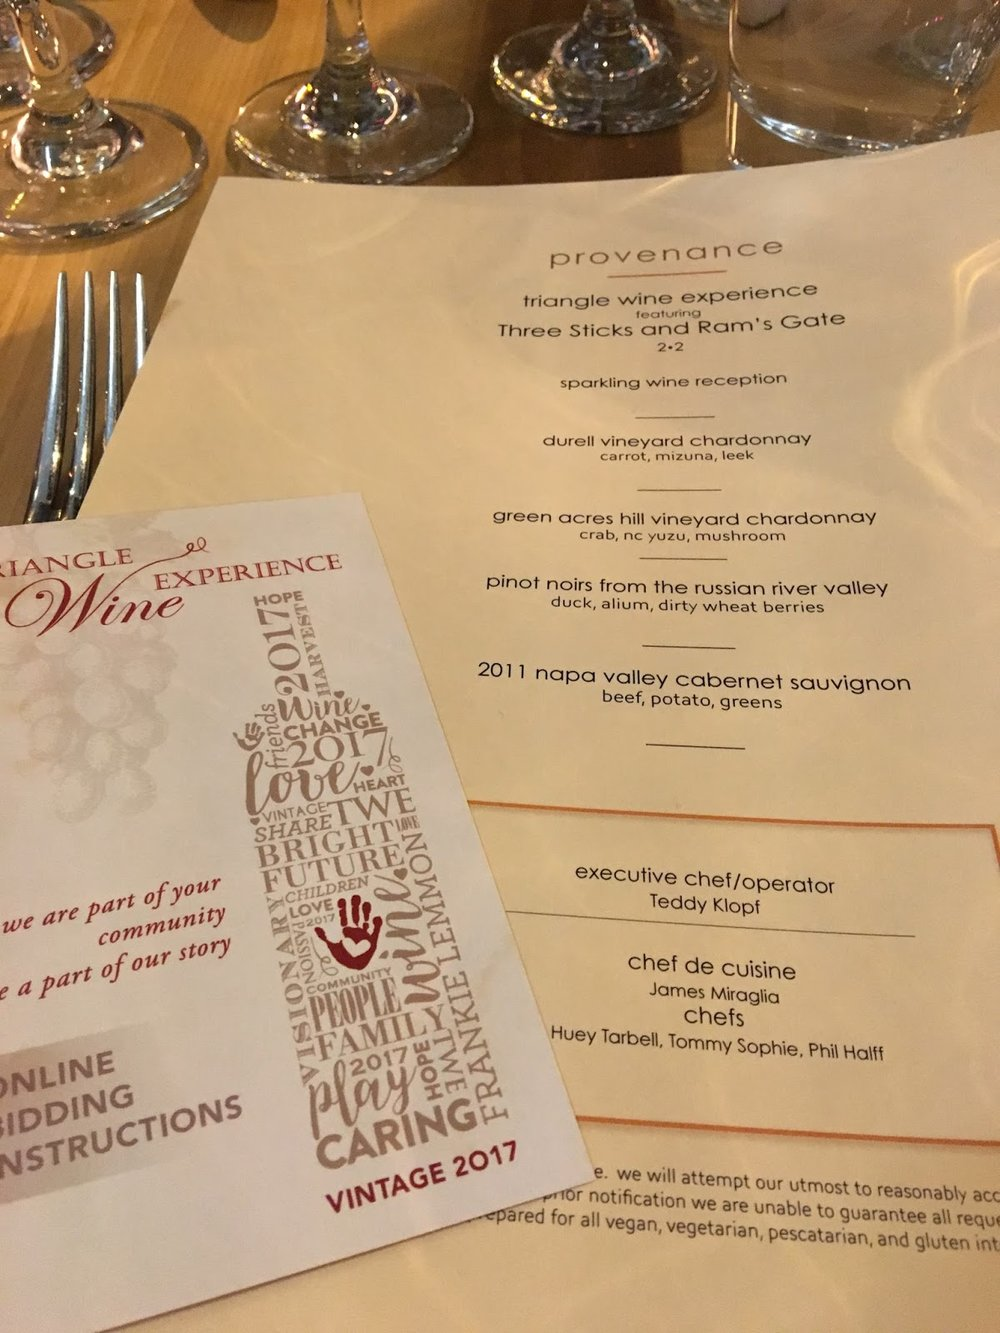 Provenance Raleigh triangle wine experience.jpg